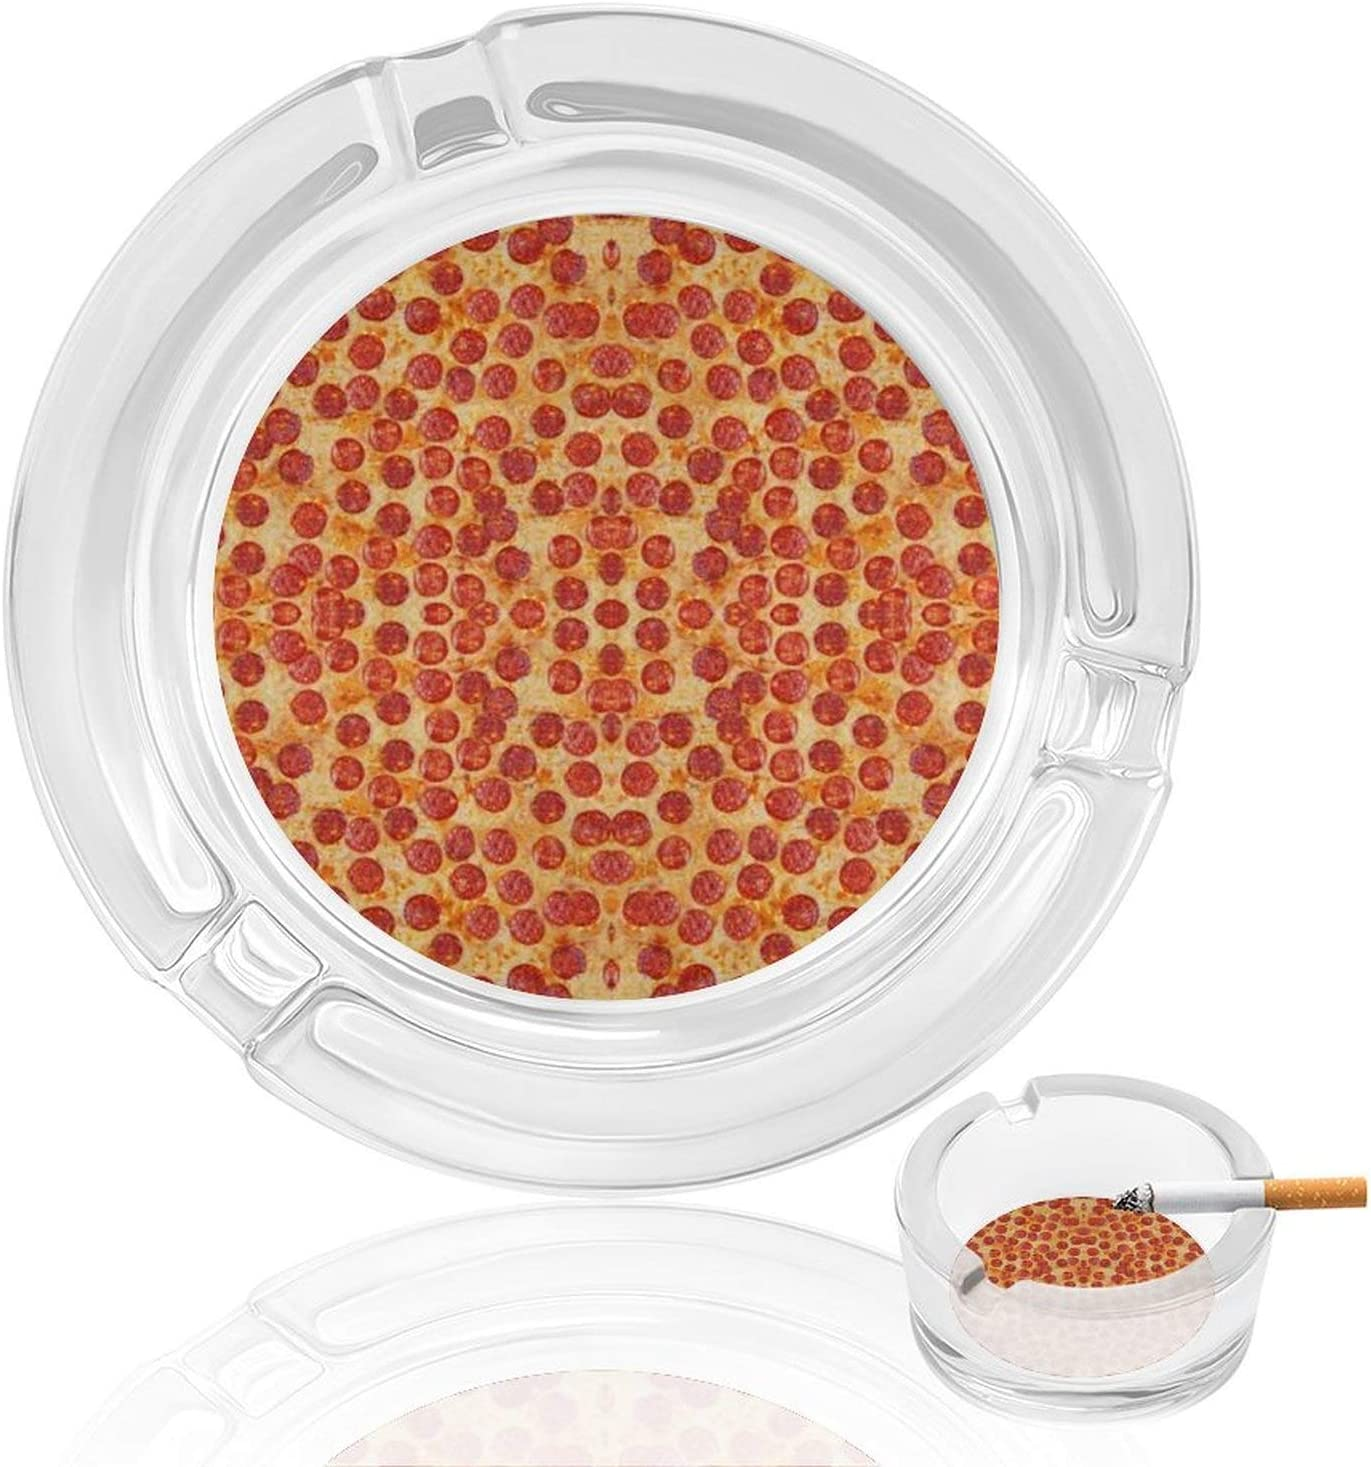 Pizza Pepperoni Unique Food Rainbow Ashtray Glass Round Cigar Cigarette Table Top Smoking Ashtrays Indoor Outdoor Home Office Decor Tabletop Decorative Fancy Cute Cool Ash Tray